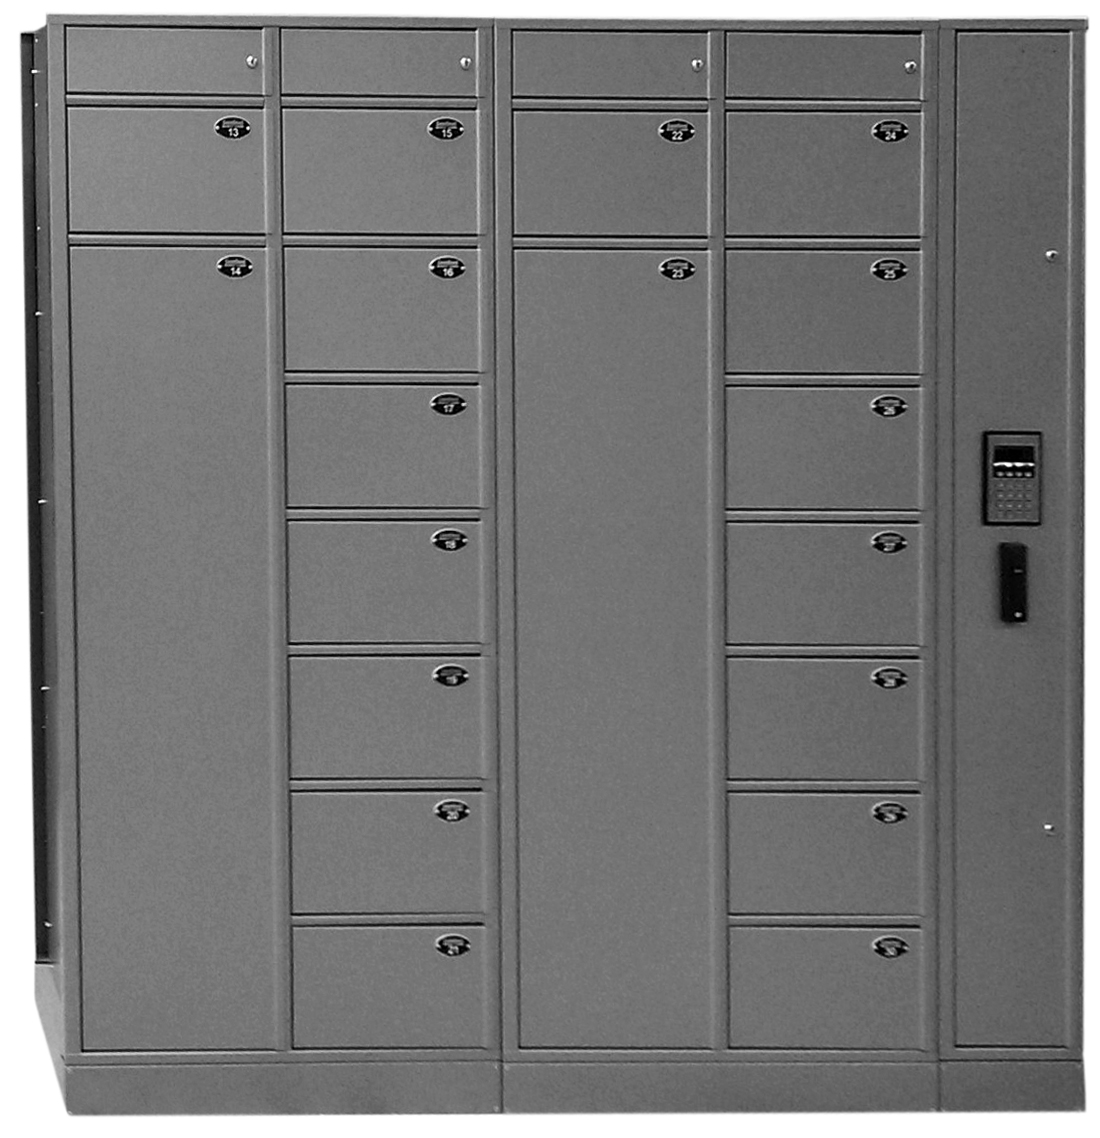 Leid Products Introduces New Biometric Evidence Storage